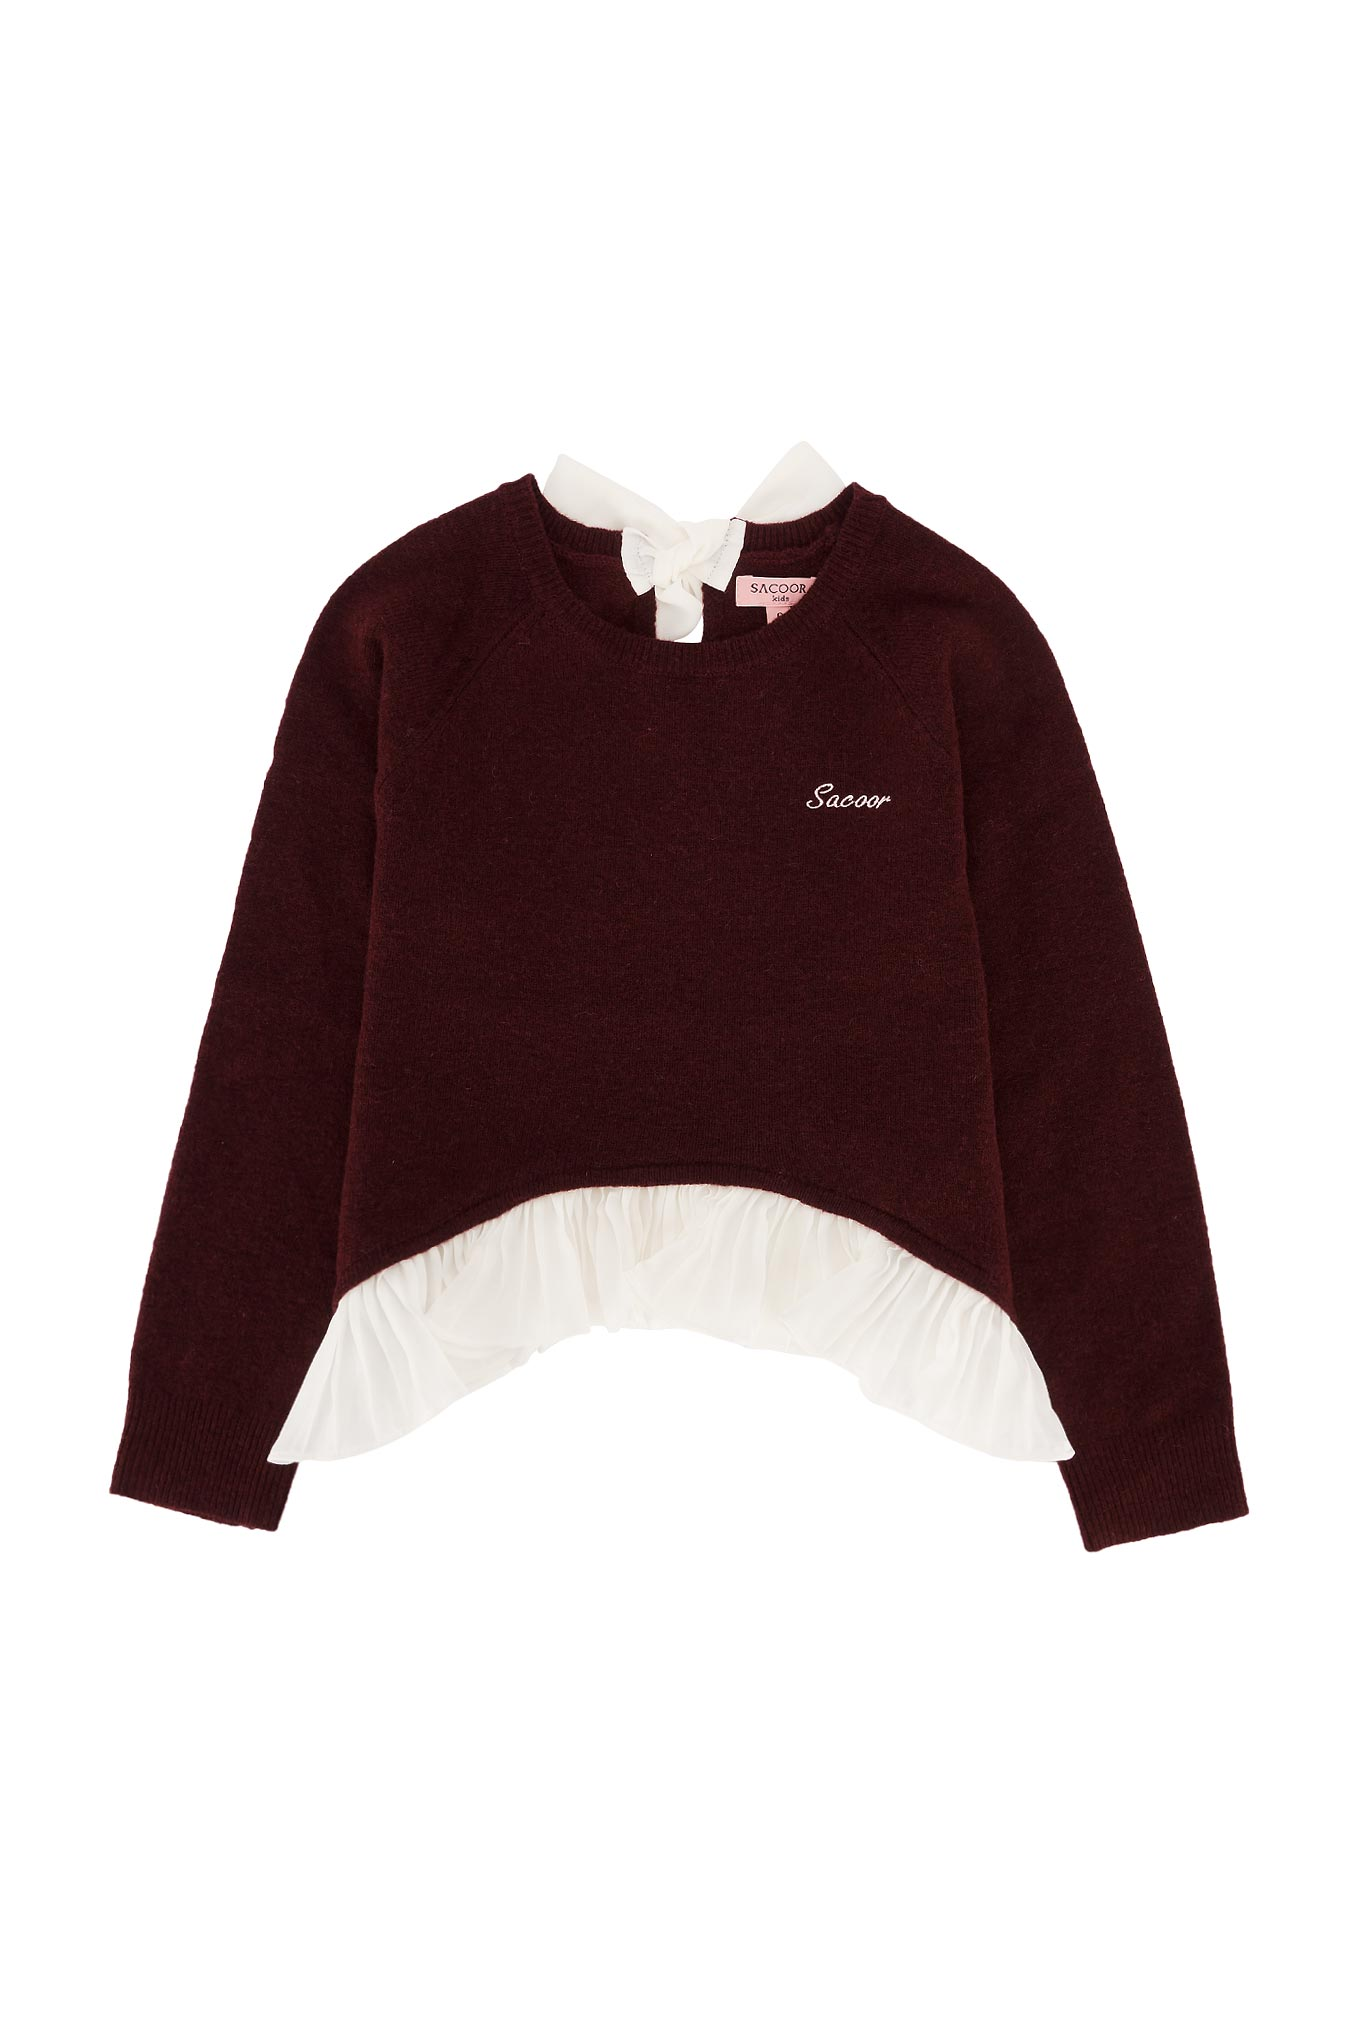 Sweater Bordeaux Casual Girl